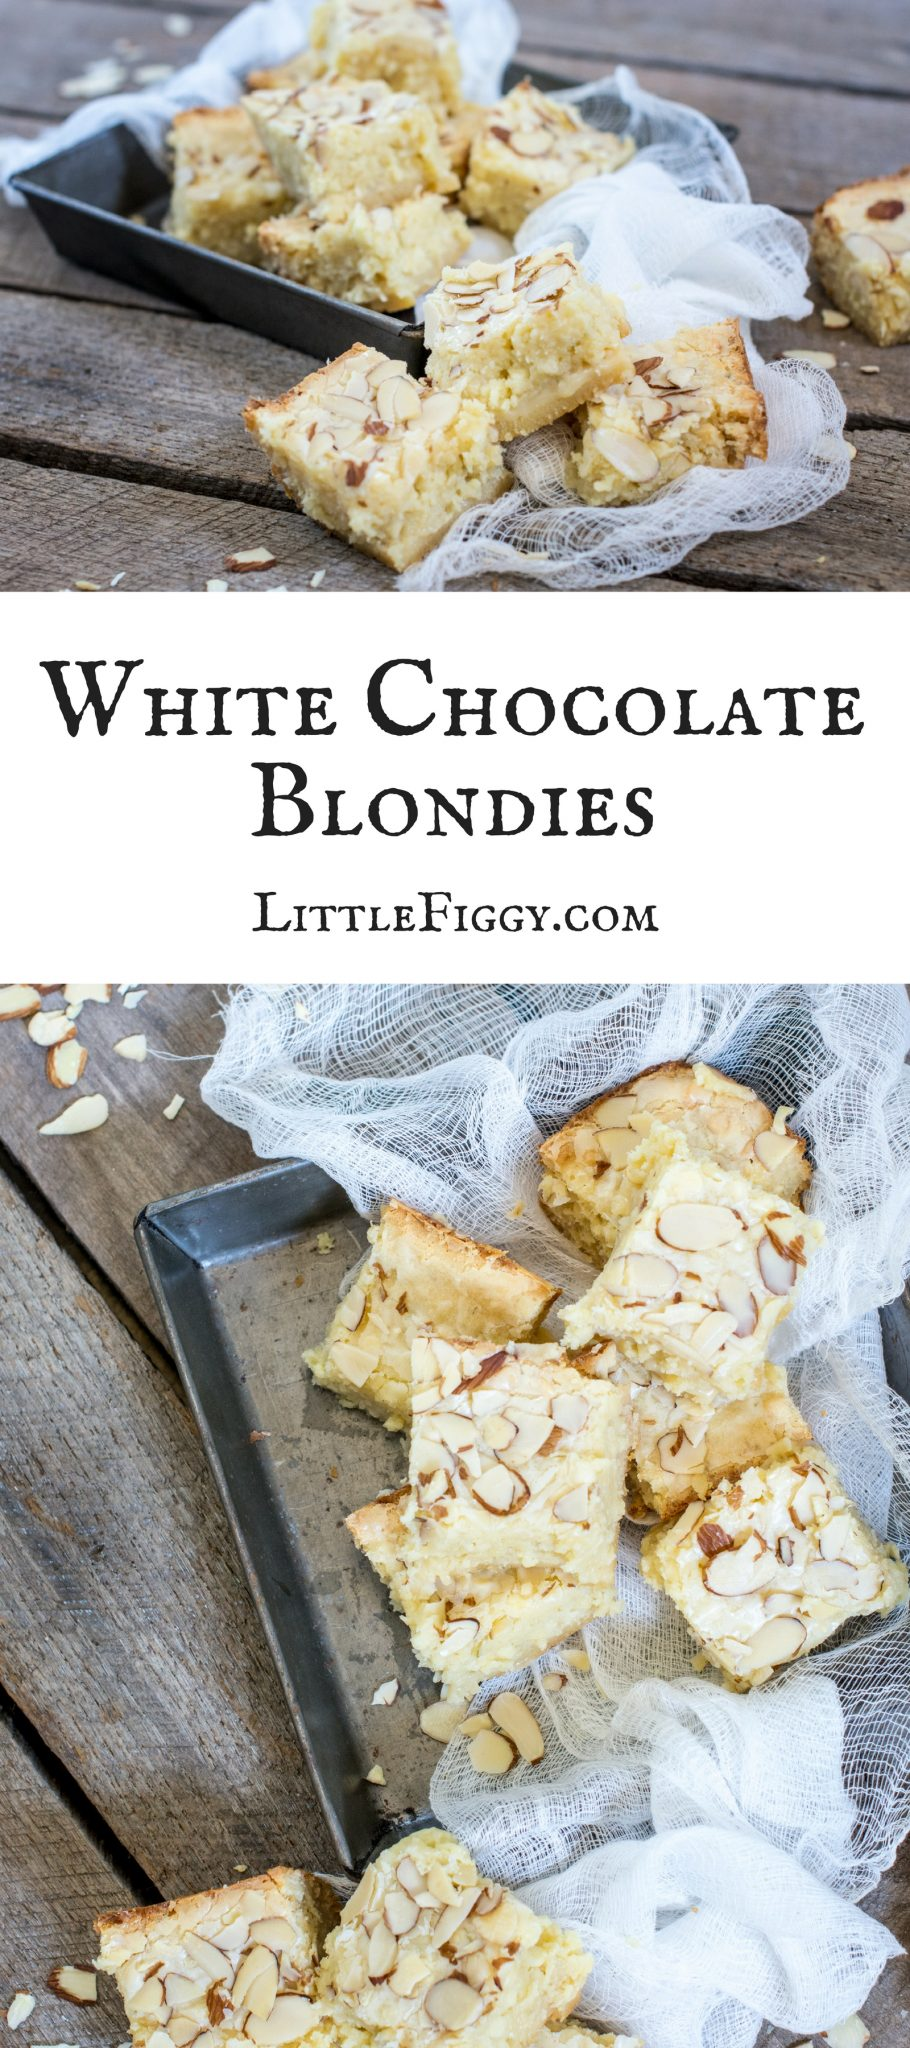 Enjoy this White Chocolate Blondies recipe, with a hint of coconut & lime to brighten things up! Get the recipe at Little Figgy Food. #ad #DriveToyota #LetsGoPlaces #Prius